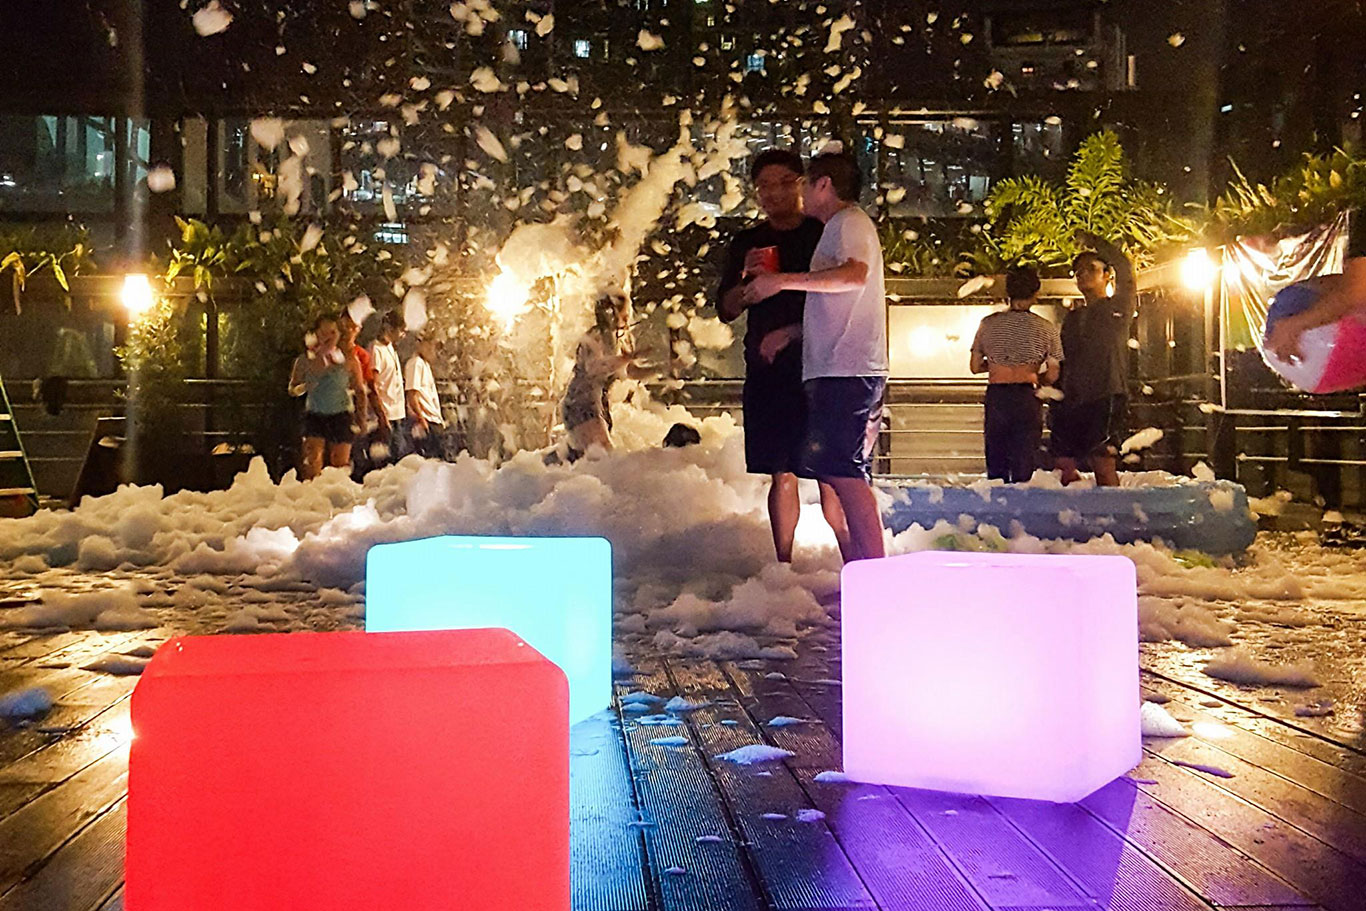 KMC SkyDeck Foam Party 2018 at Picadilly Star, BGC, Taguig, Manila, Philippines - EpicSpace